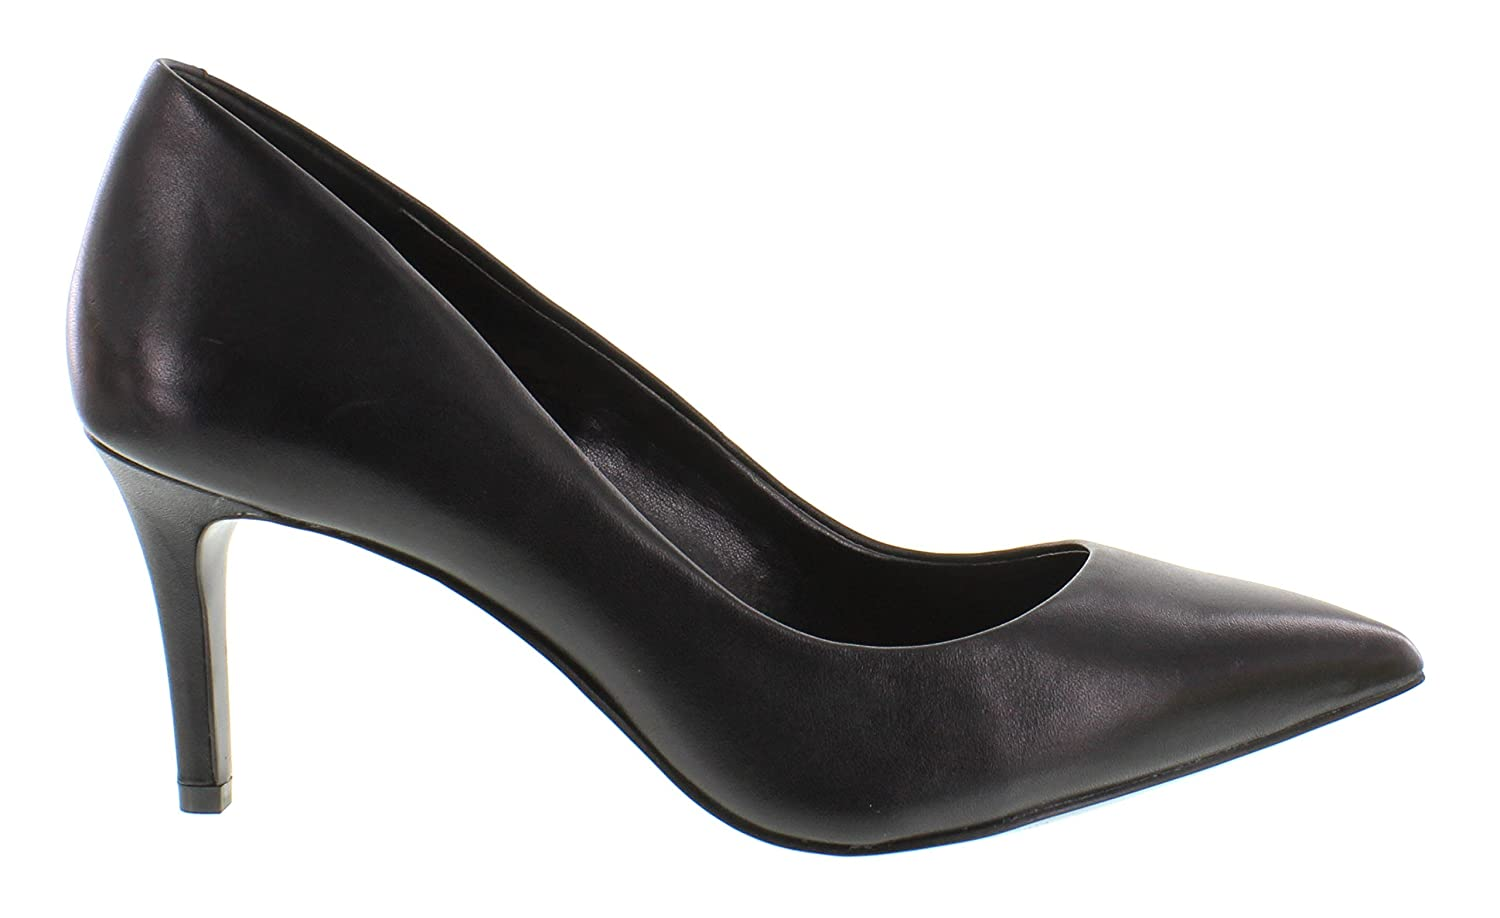 727003cf1caaf Amazon.com | Vince Camuto Women's Cassina Dress Pump Black, 12 | Pumps